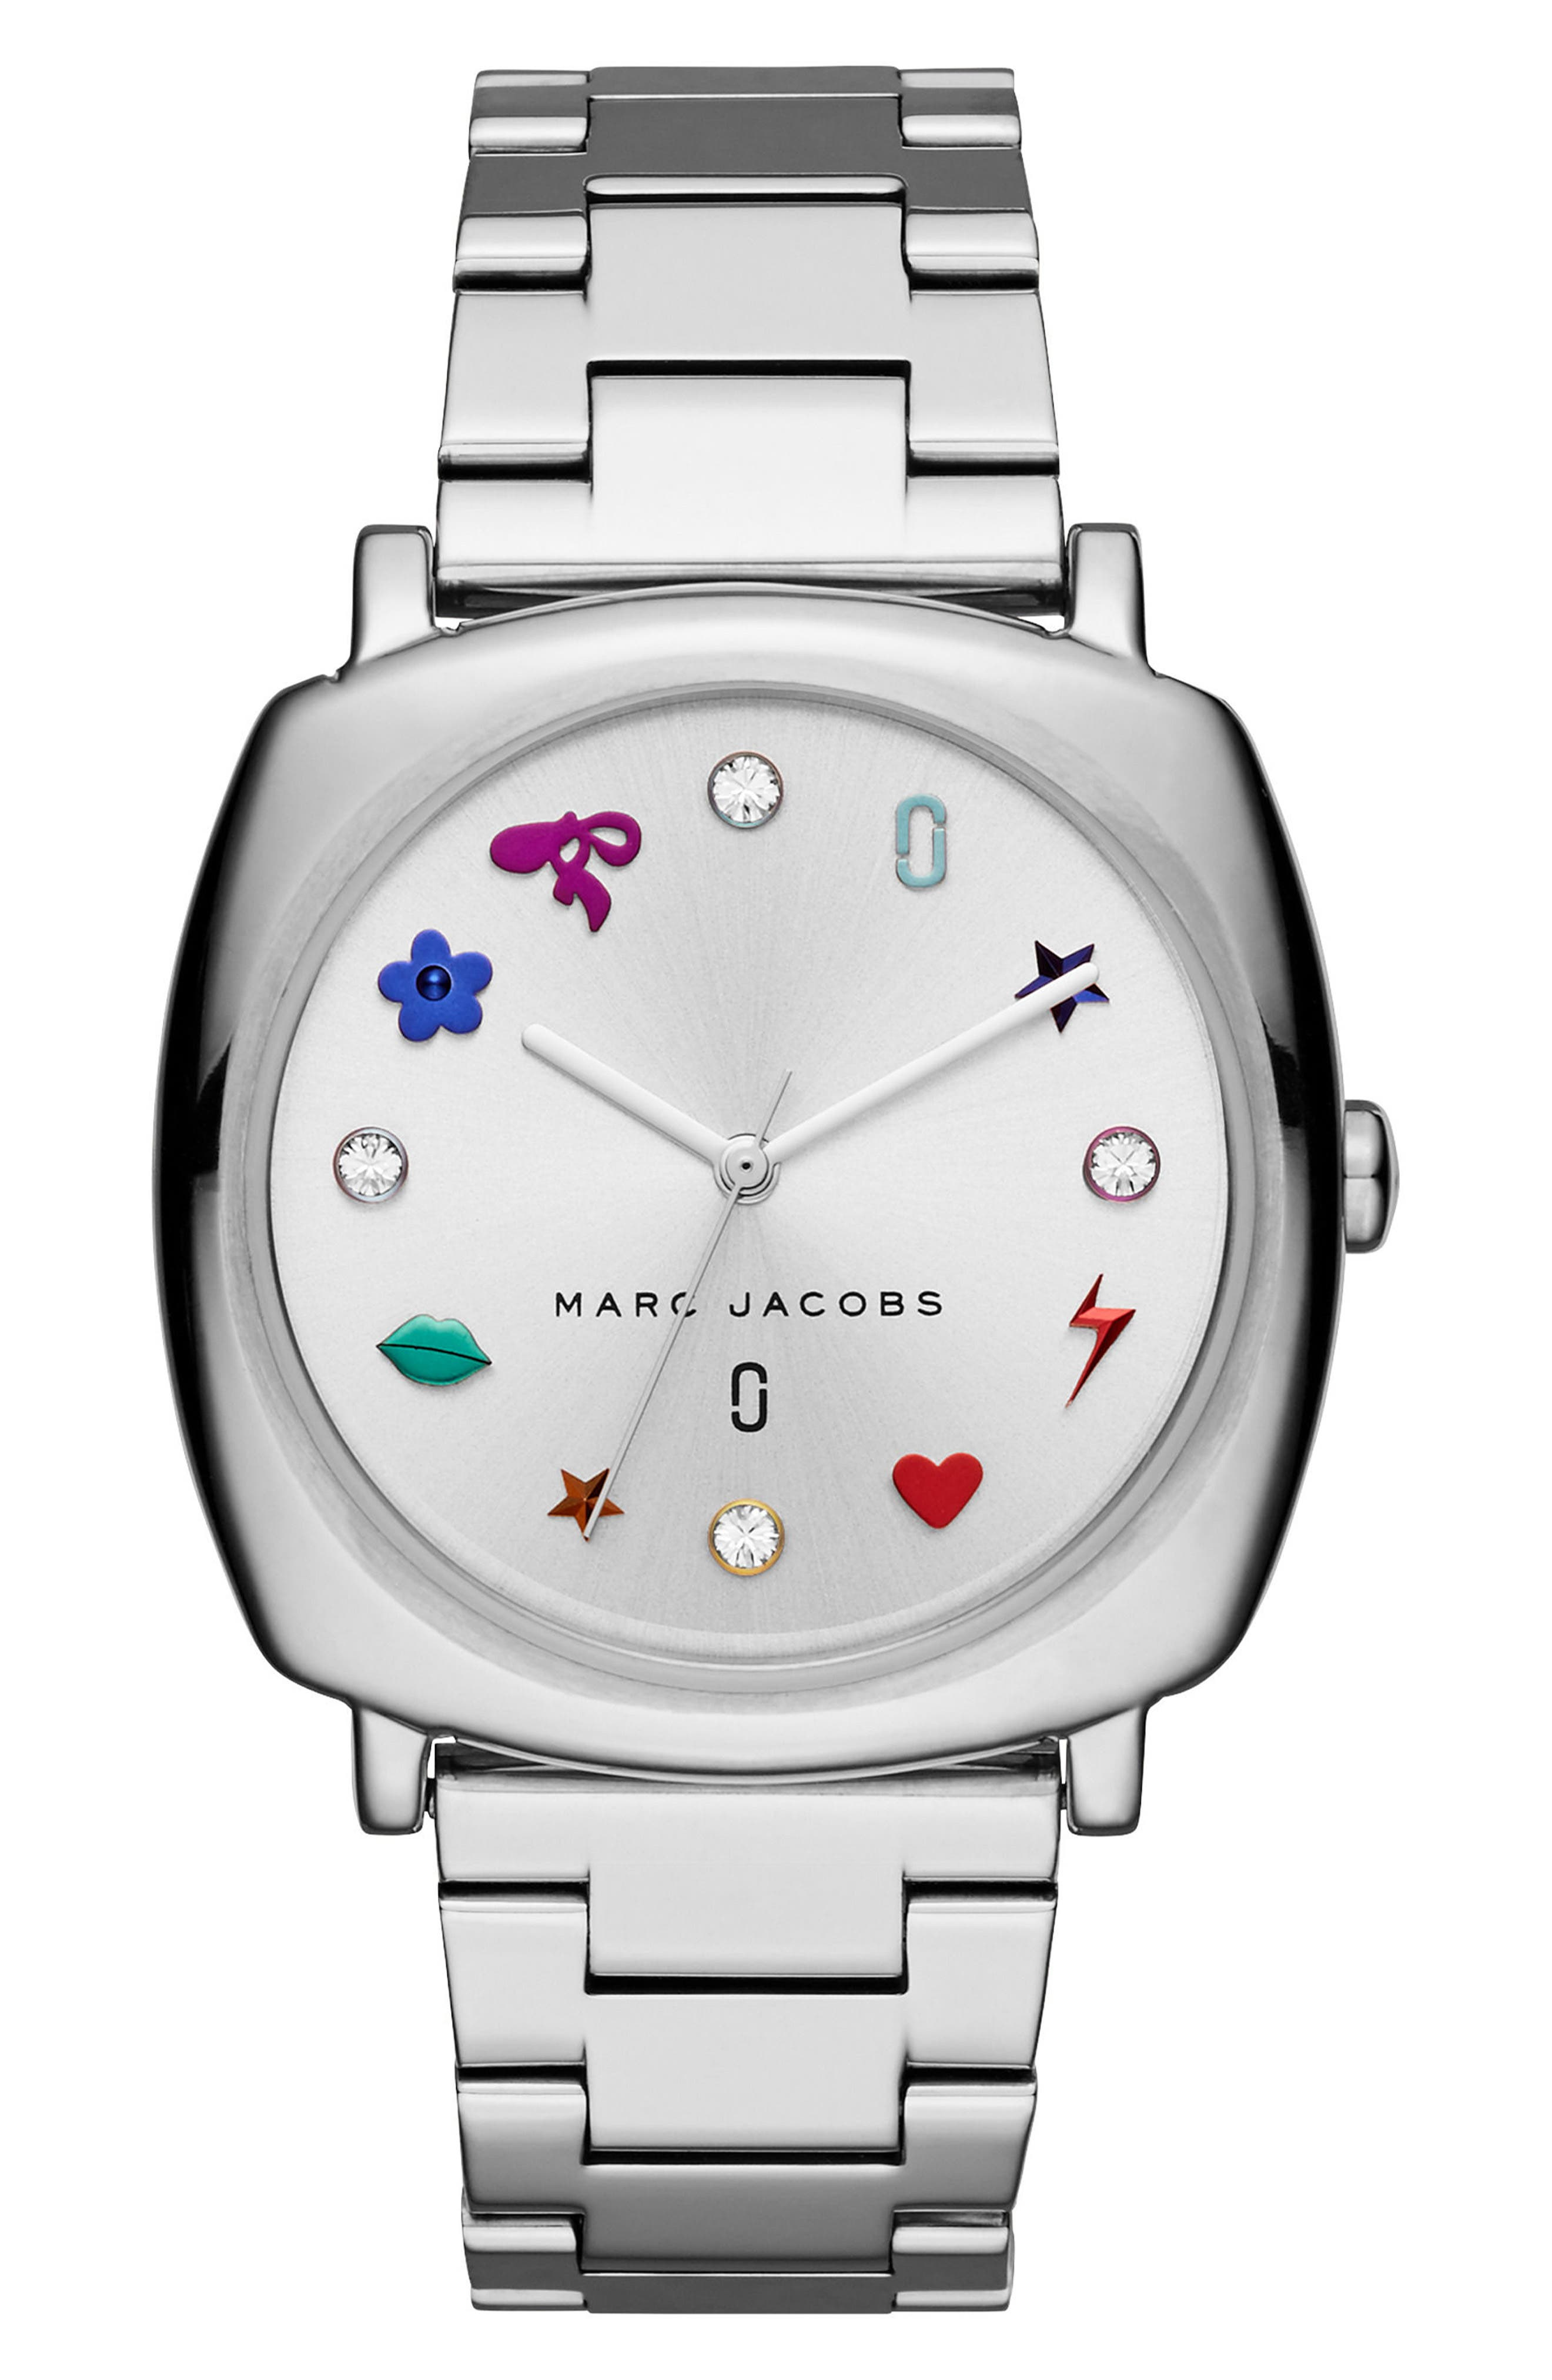 MARC JACOBS Mandy Bracelet Watch, 34mm